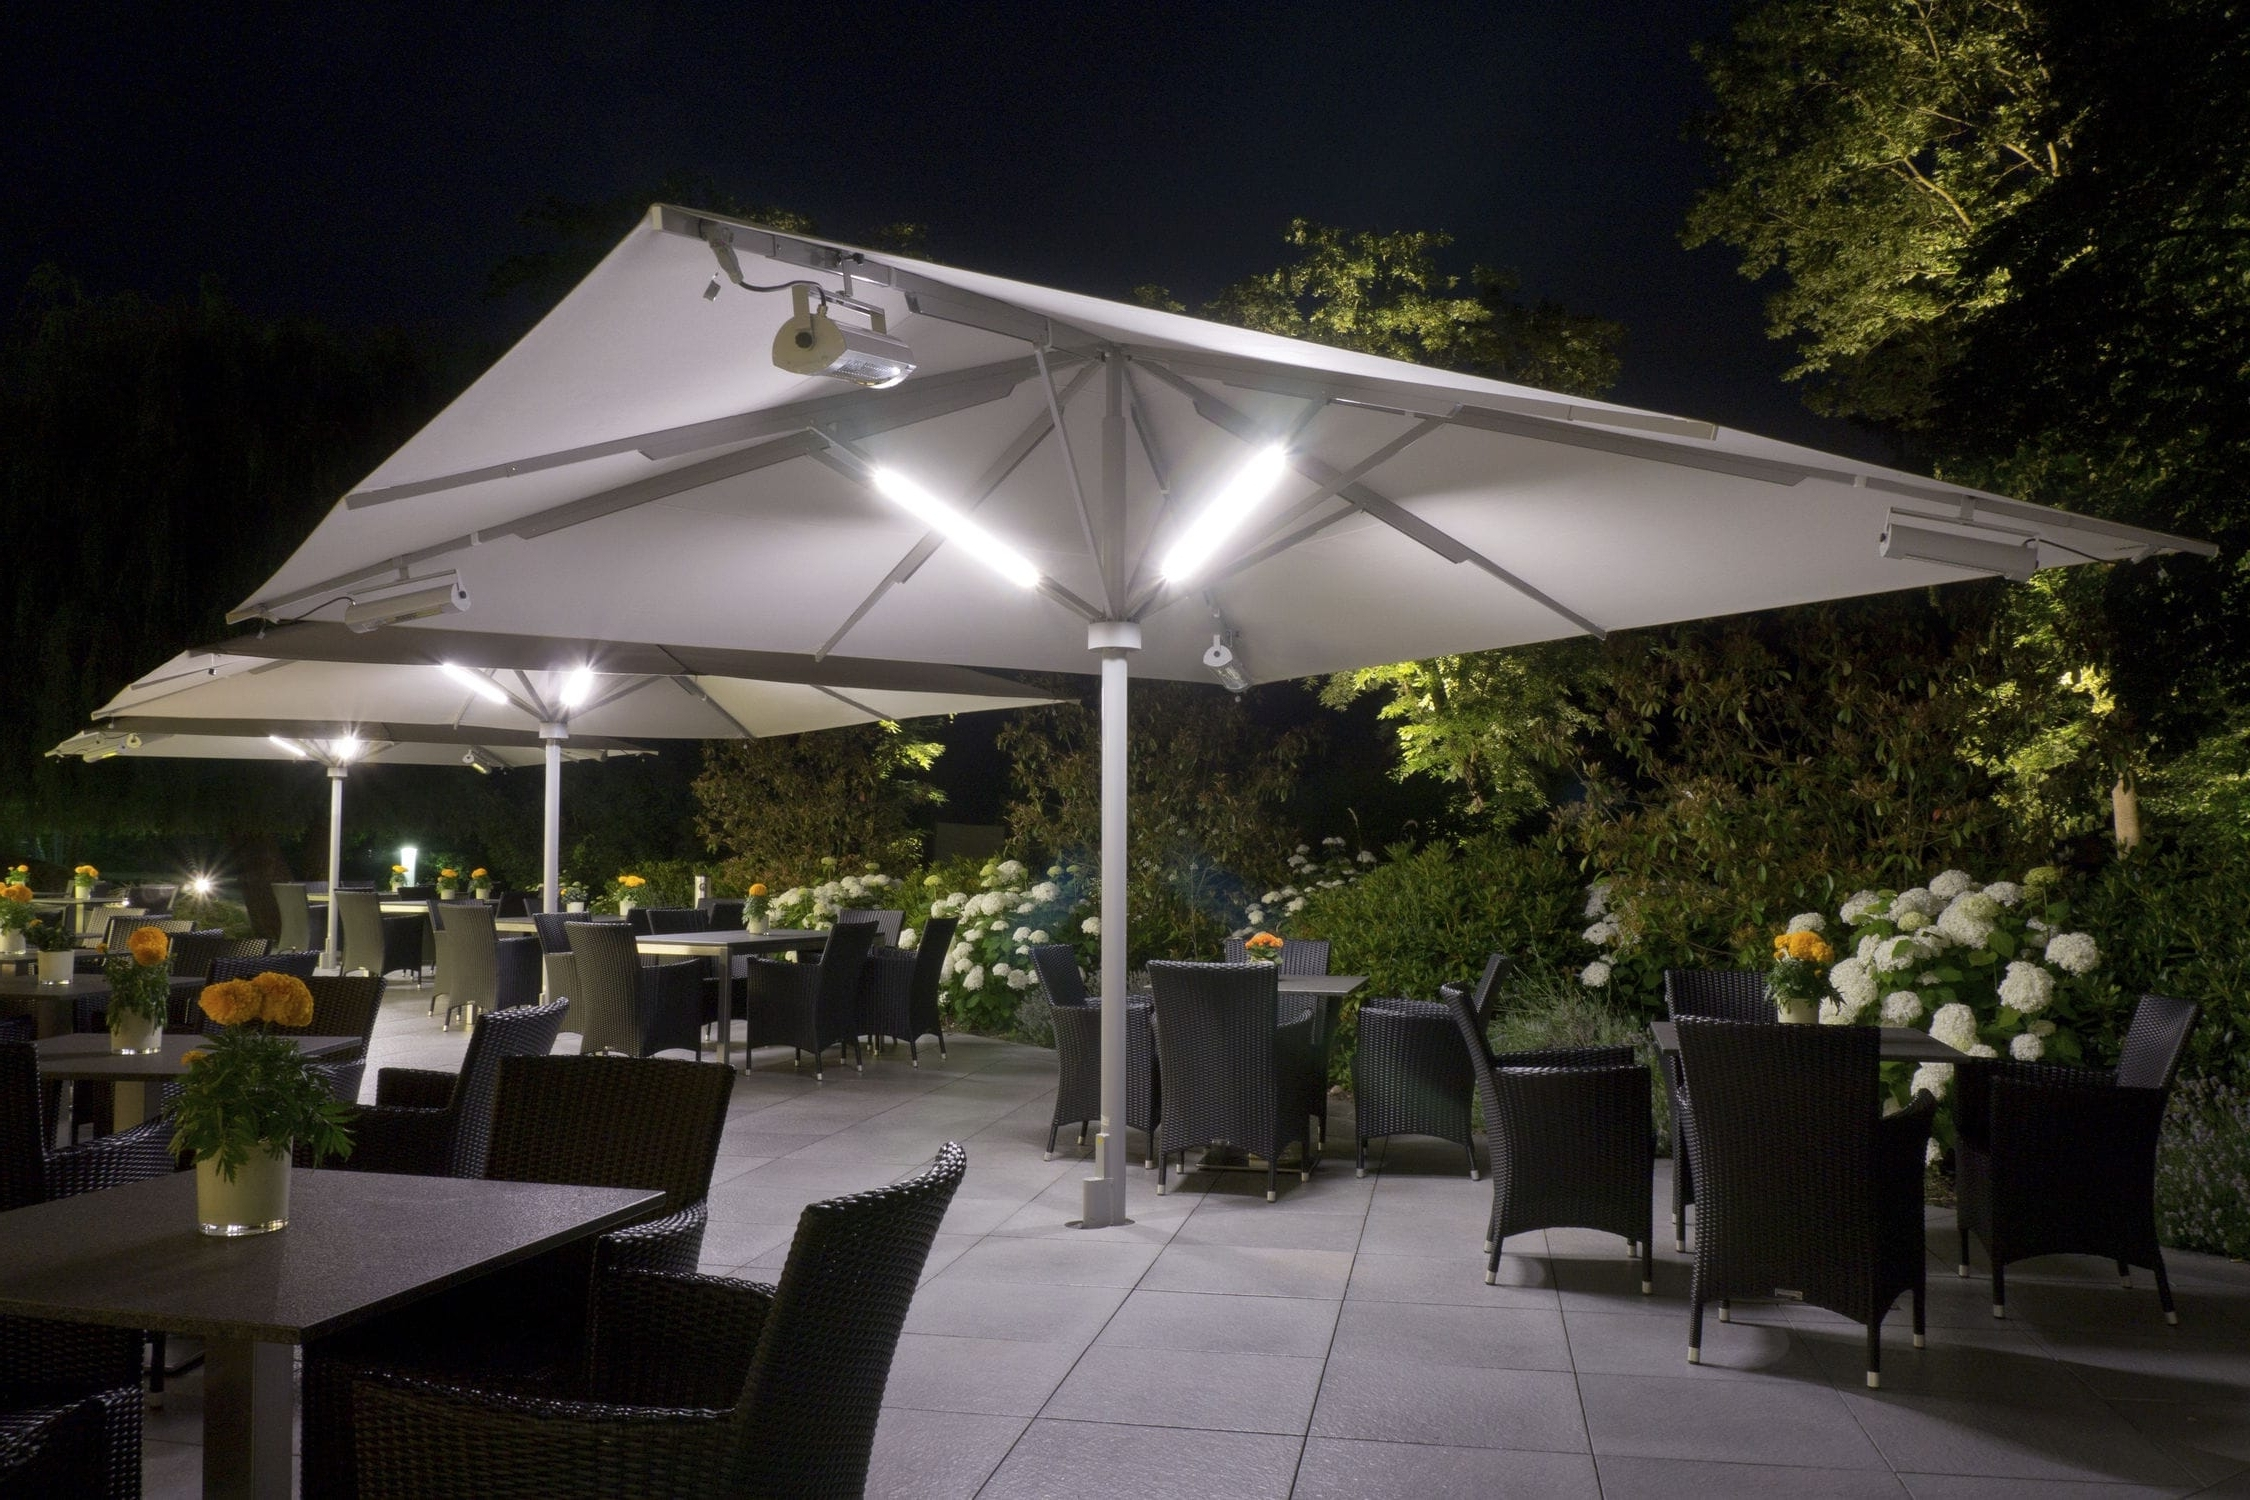 Recent Patio Umbrellas With Led Lights Intended For Solar Powered Lights For Patio Umbrellas • Patio Ideas (View 17 of 20)